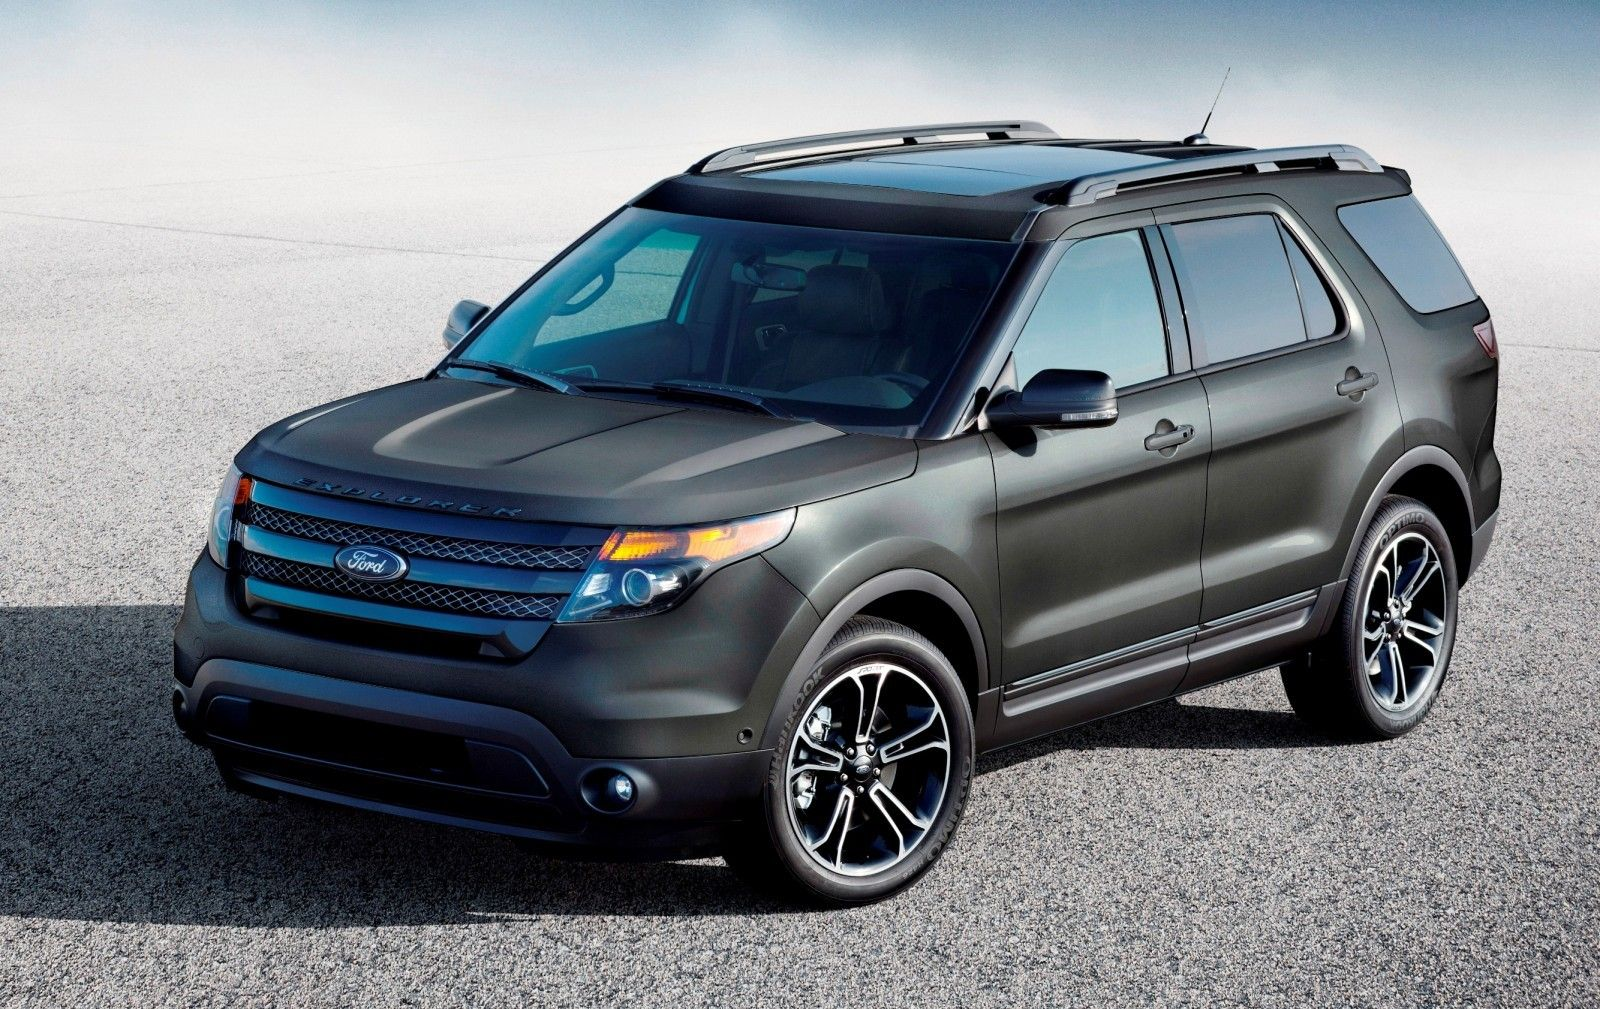 2015 Ford Explorer Xlt Appearance Pack Adds 2 0l Turbo Big Wheels